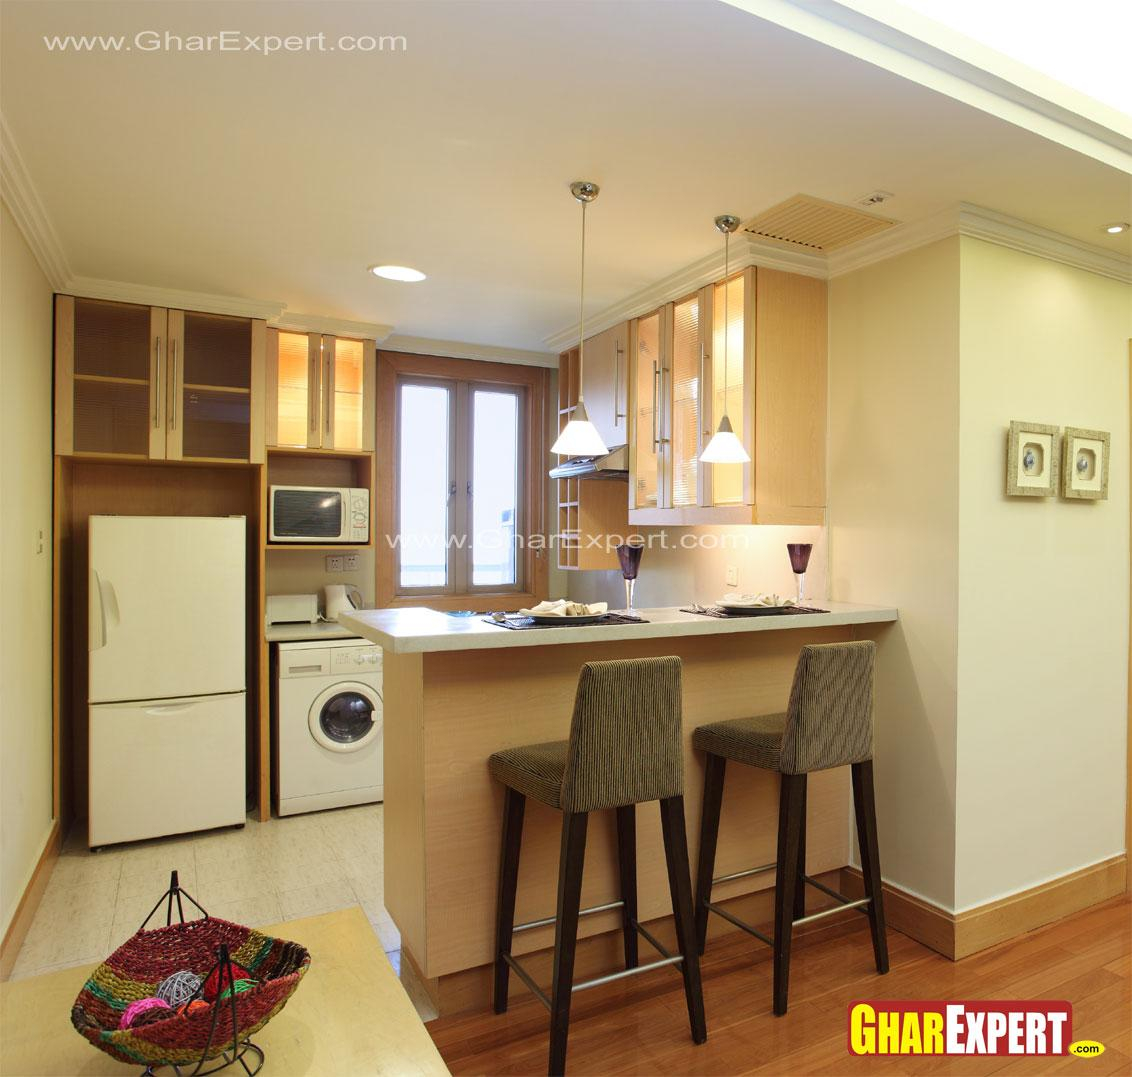 Small Two Seat Breakfast Counter In Kitchen Gharexpert